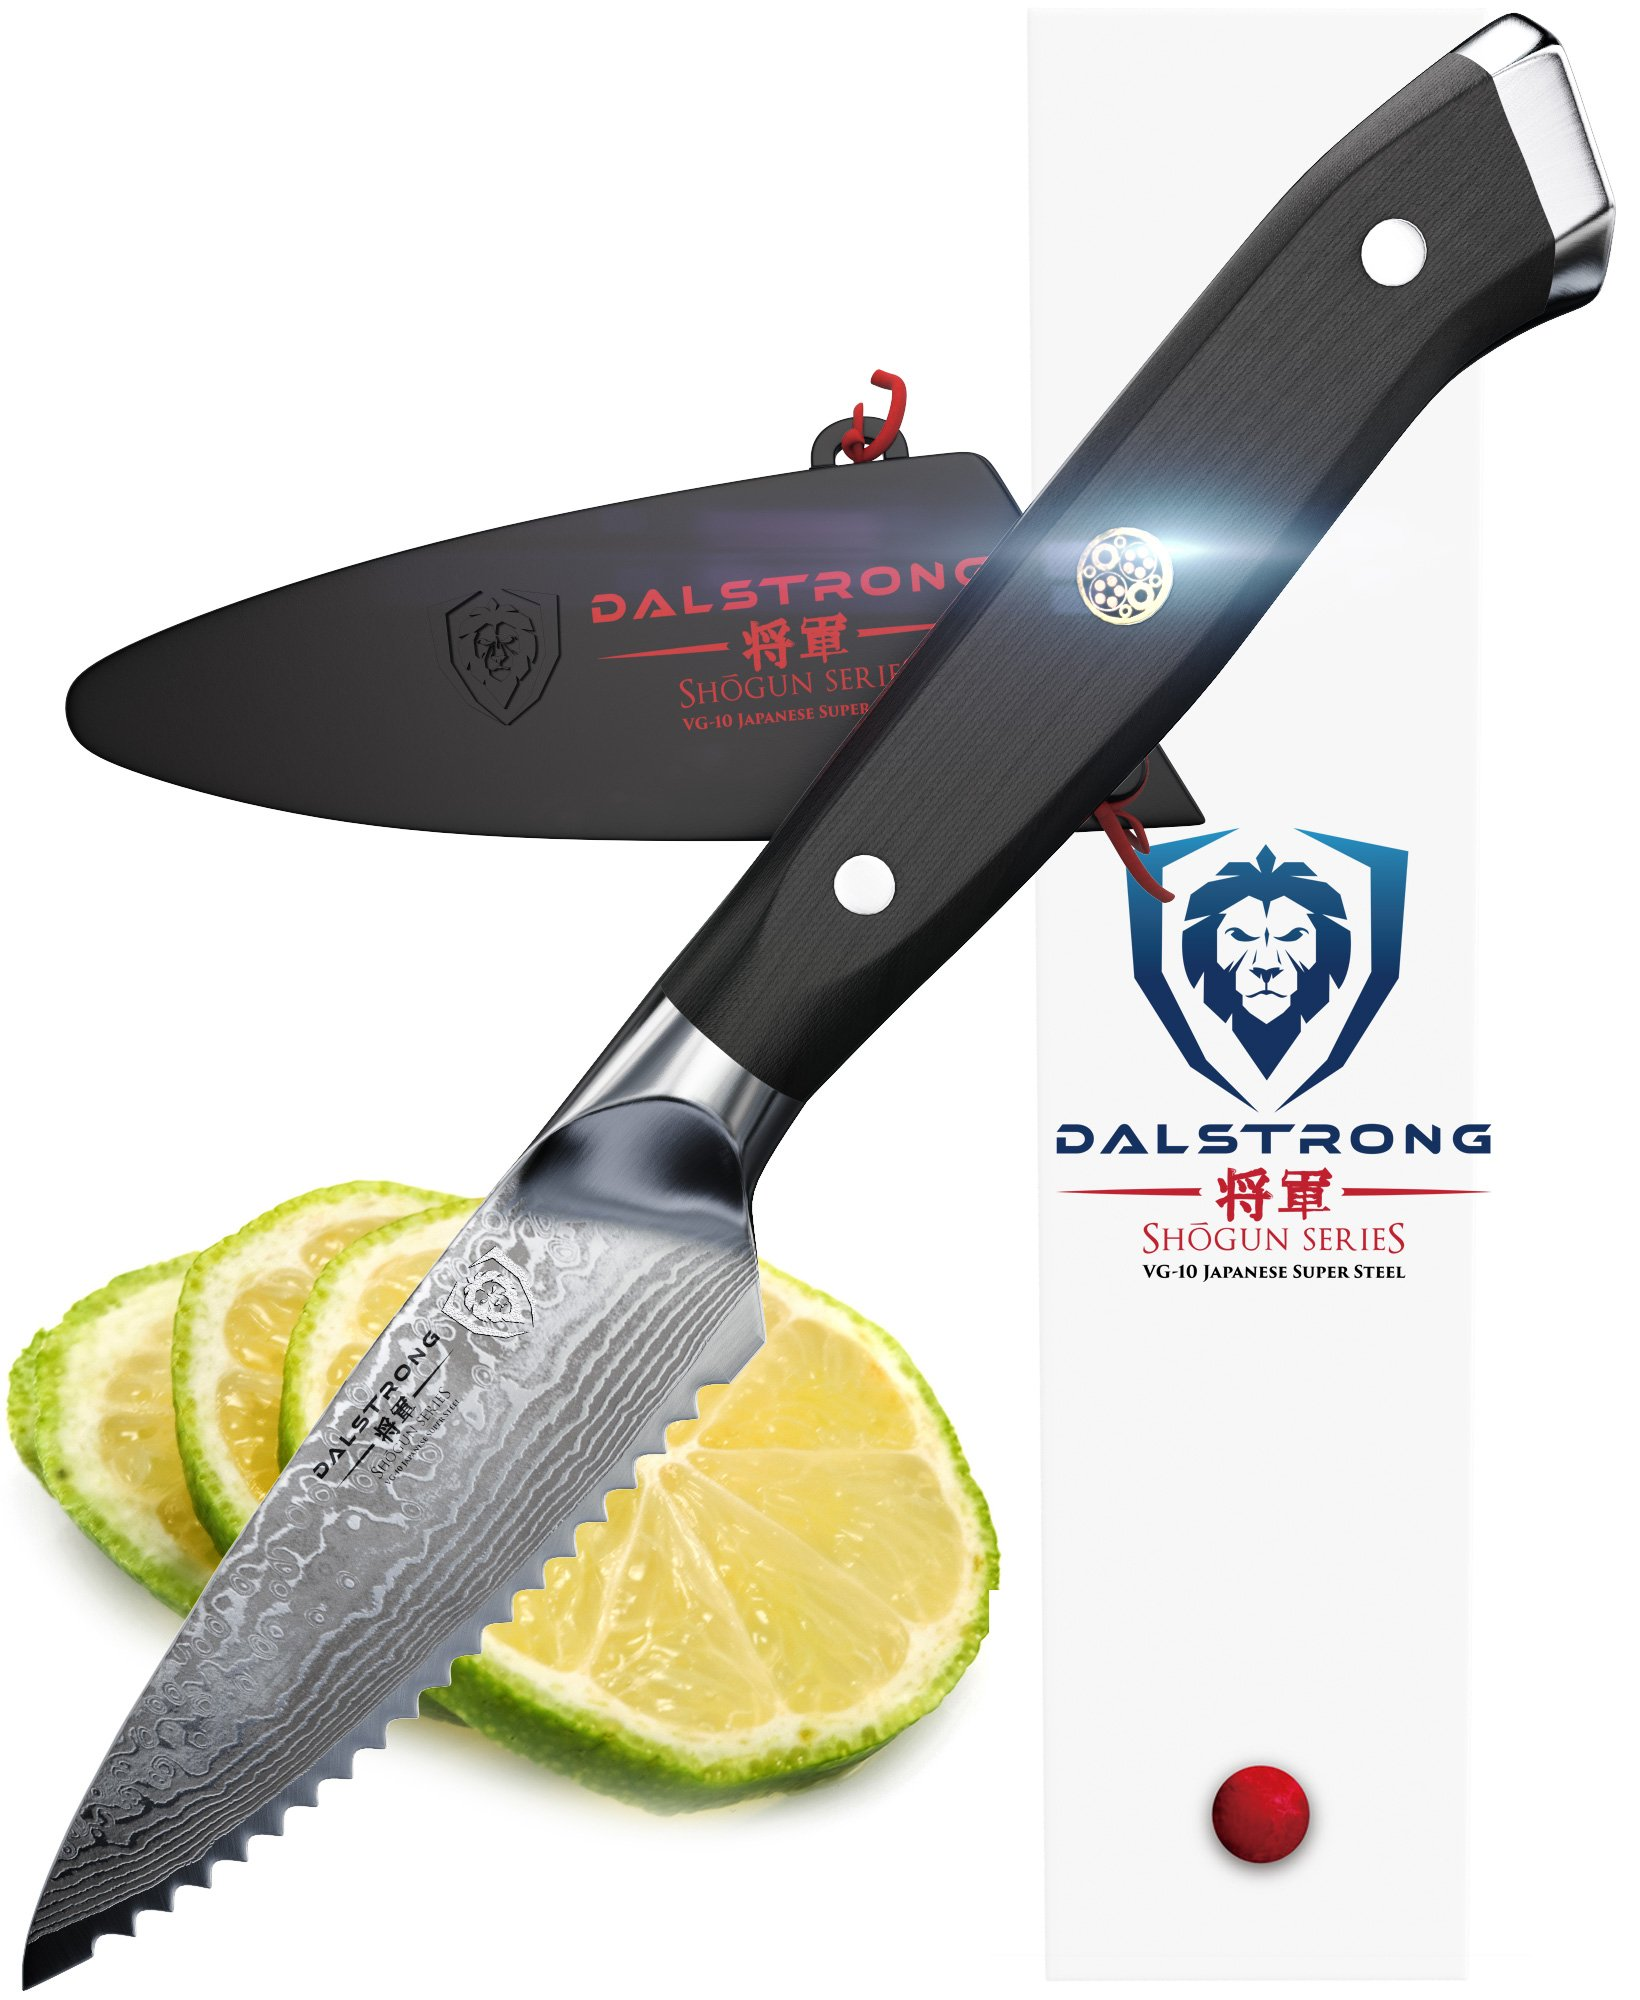 Dalstrong Serrated Paring Knife - Shogun Series - VG10-3.5'' - Sheath by Dalstrong